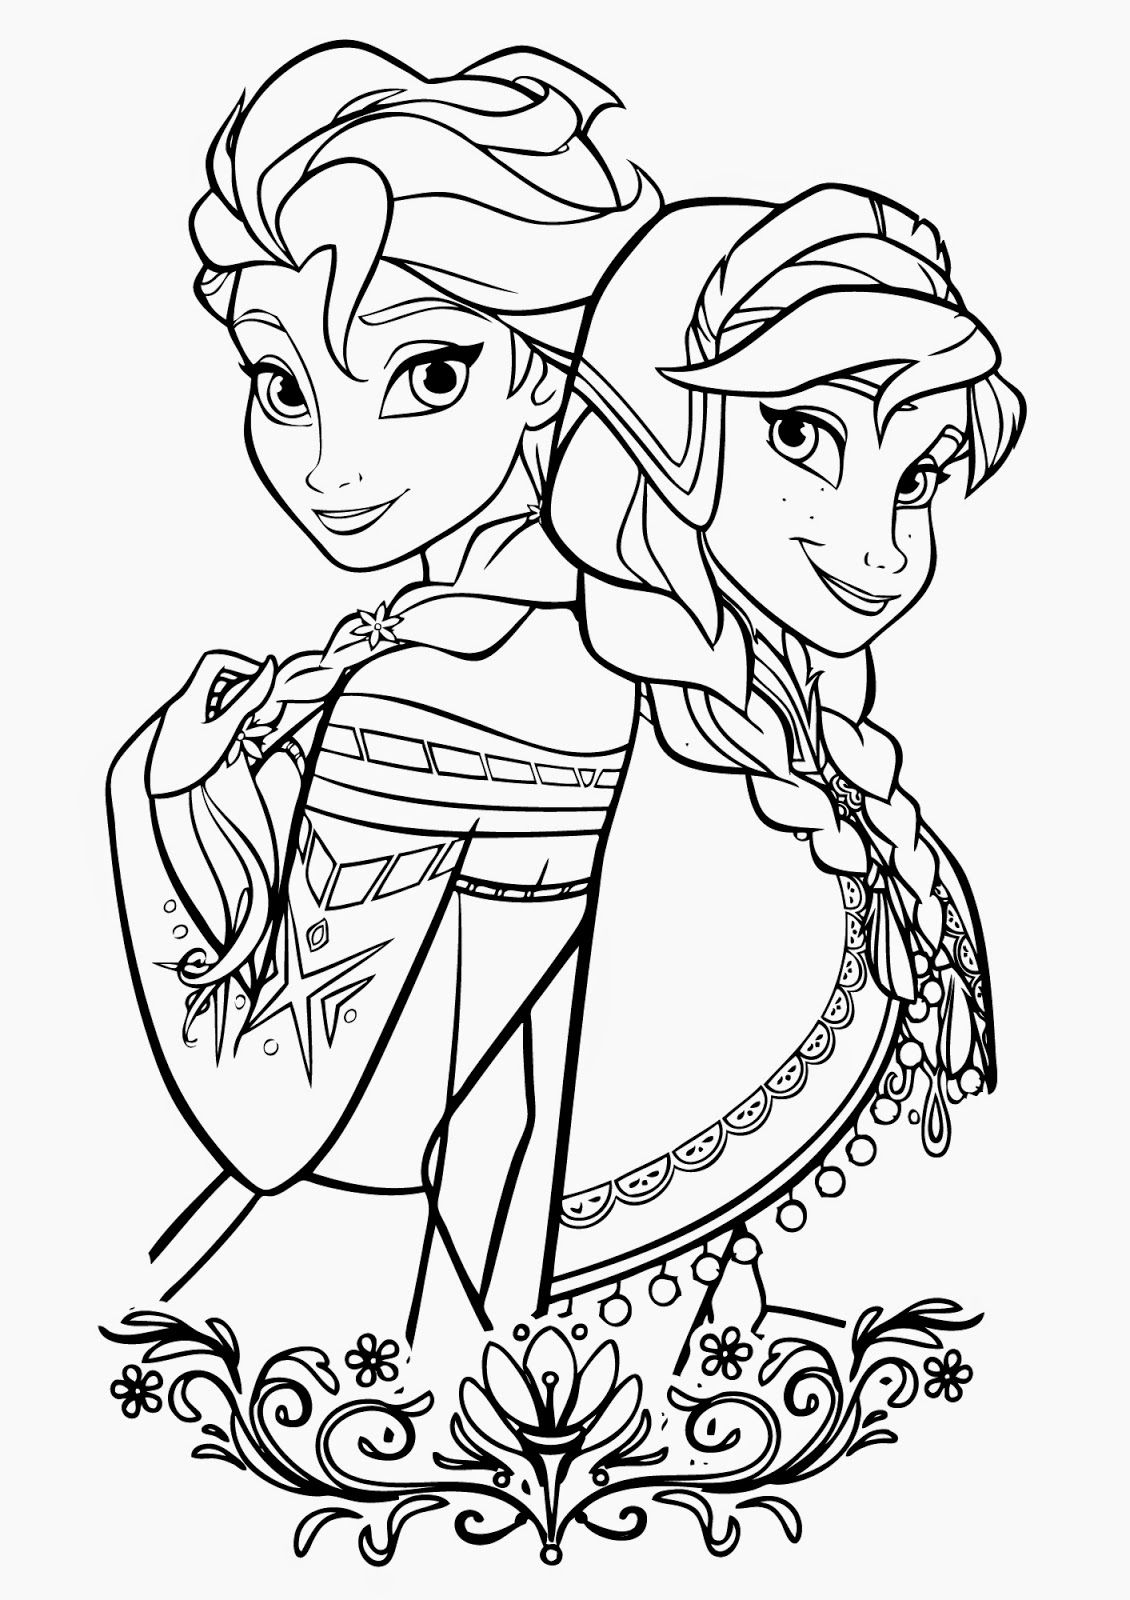 elsa freeze coloring page printable coloring pages sheets for kids get the latest free elsa freeze coloring page images favorite coloring pages to print